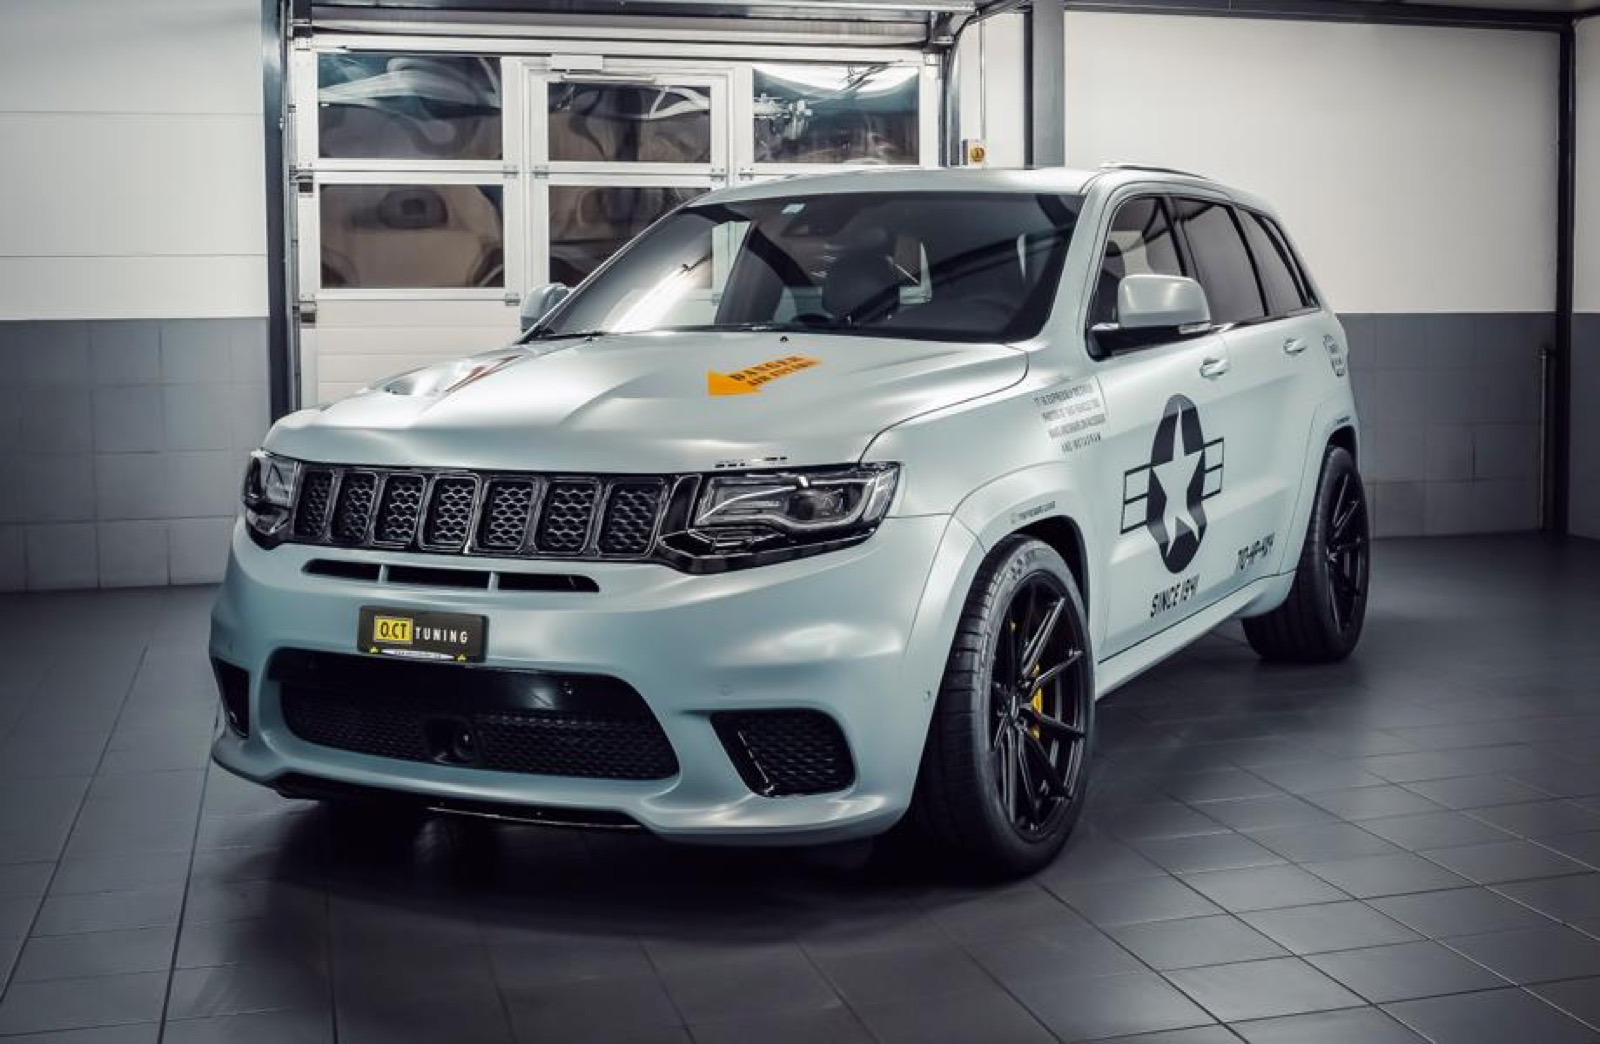 Jeep_Grand_Cherokee_Trackhawk_Edition_OCT_1000_0004